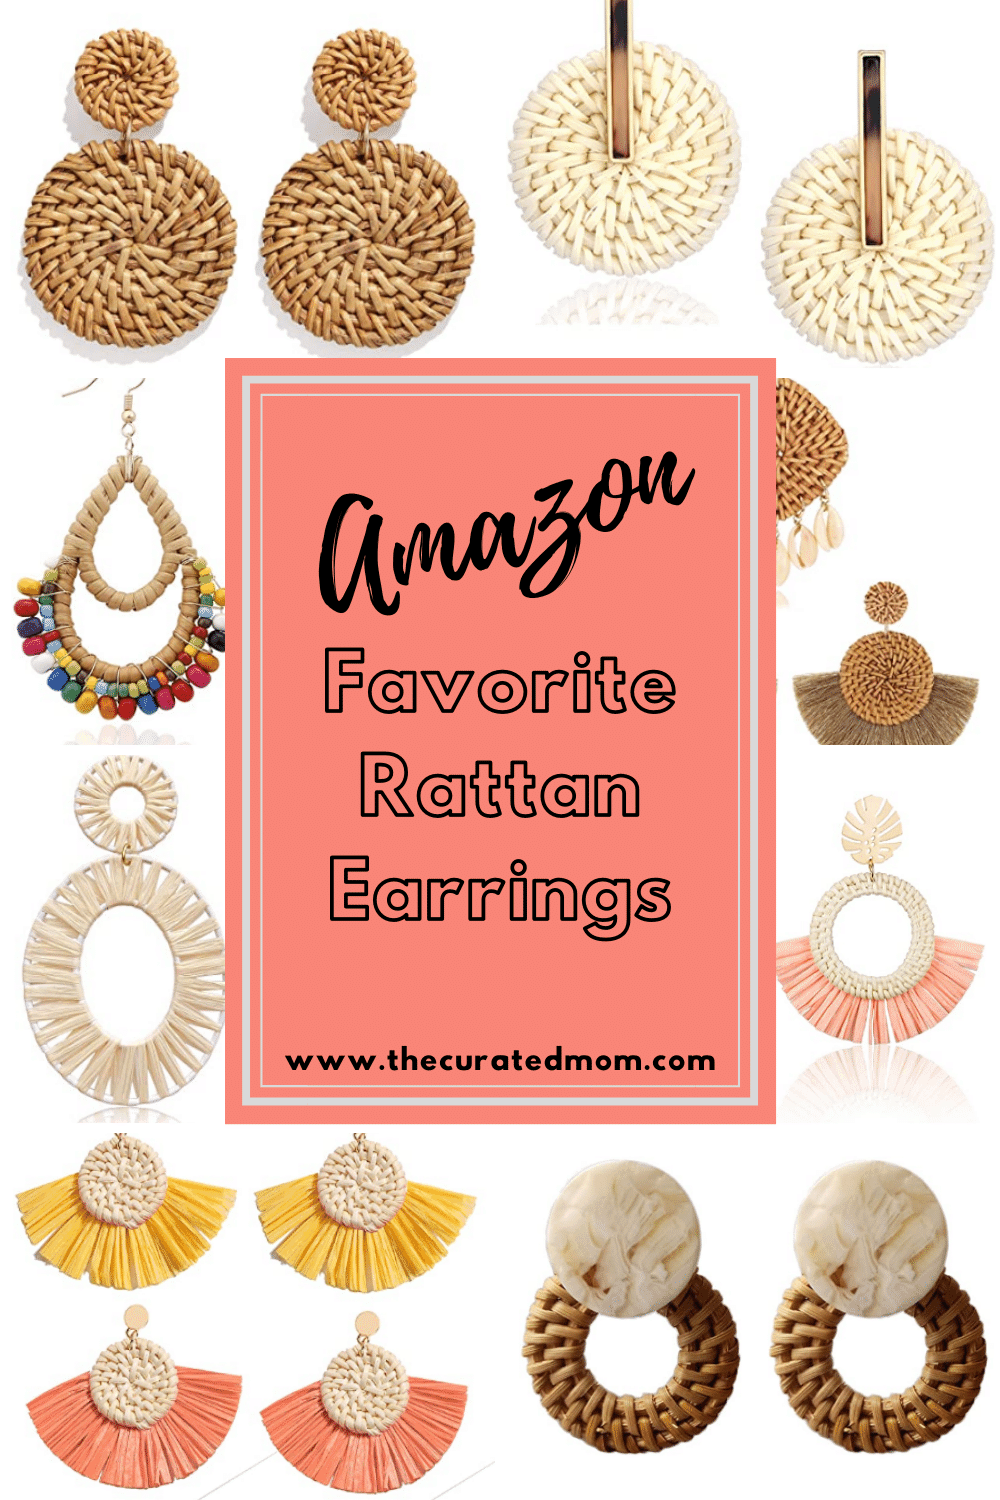 Various rattan earrings with text that reads Amazon Favorite Rattan Earrings